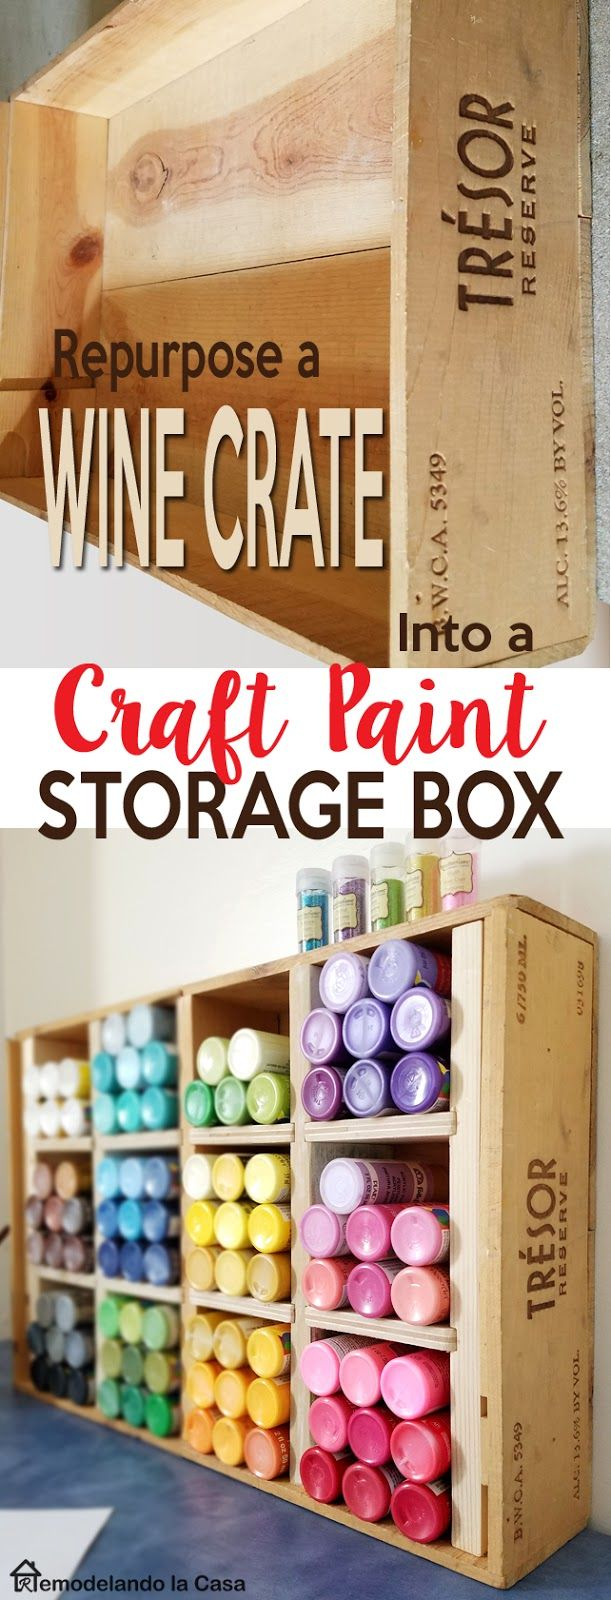 Best 25 craft room storage ideas on pinterest craft best 25 craft room storage ideas on pinterest craft organization craft rooms and craftroom ideas solutioingenieria Choice Image